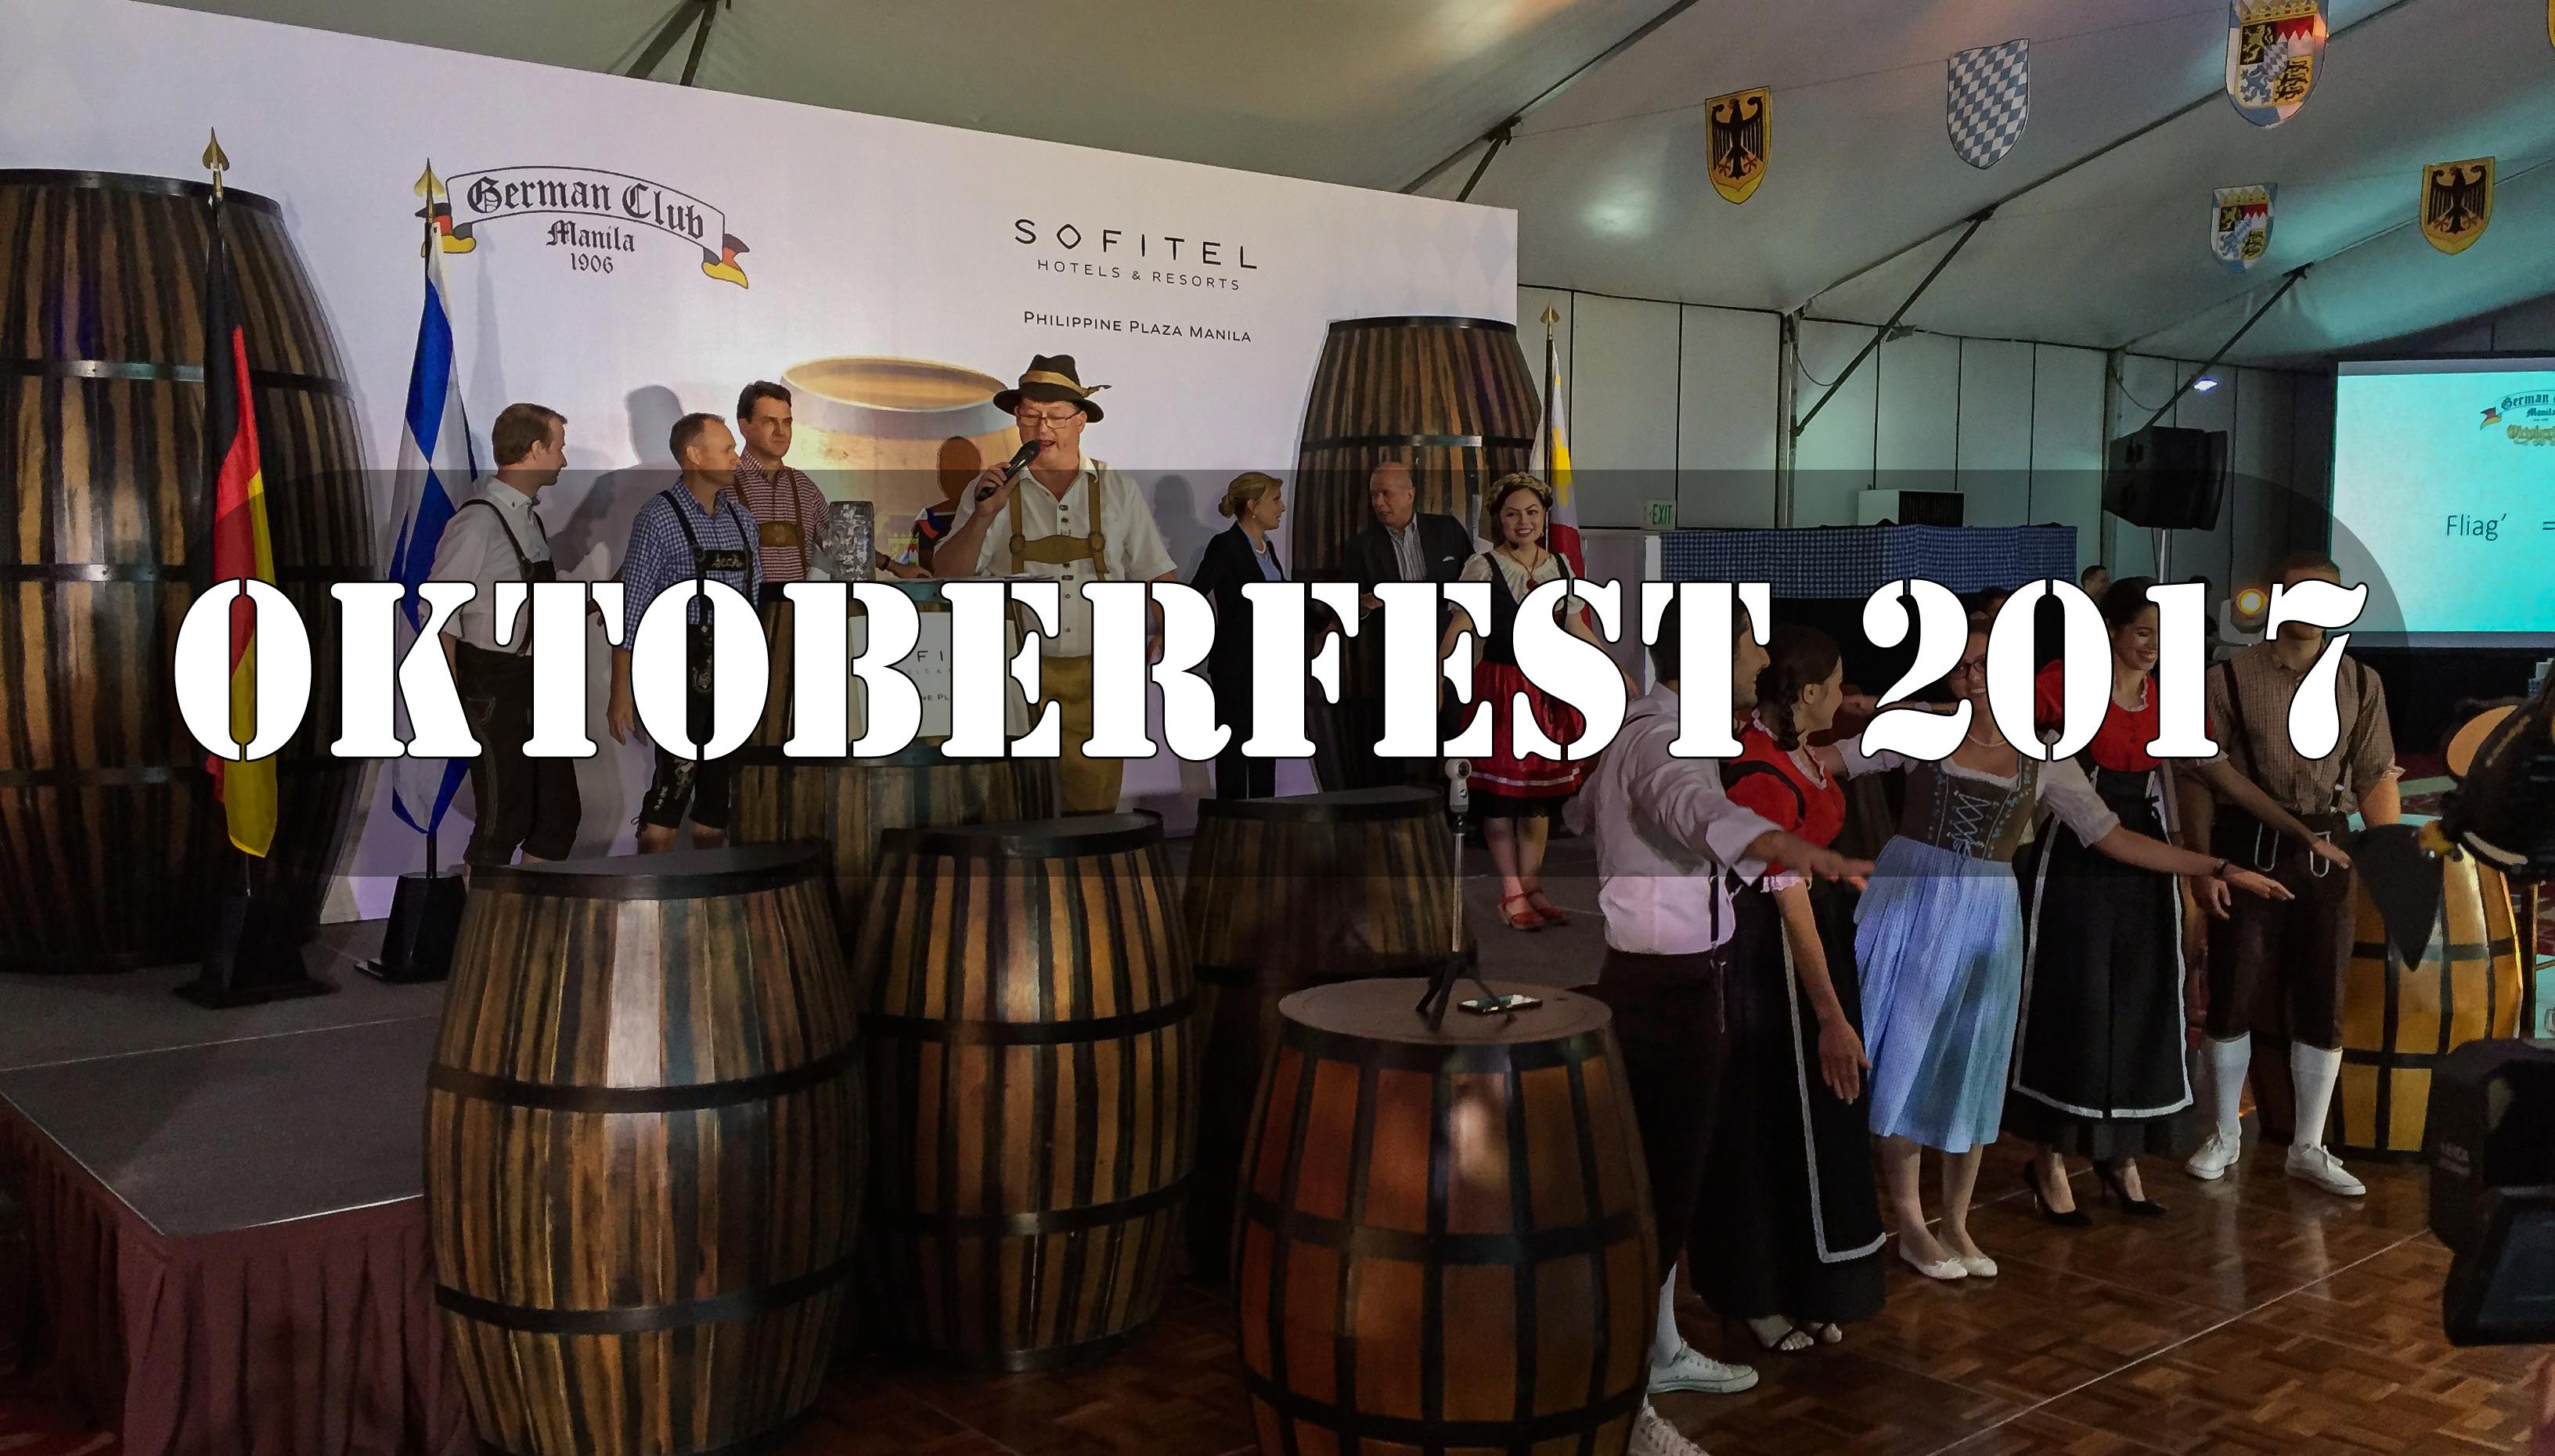 Whether you like beer or not: why would you want to attend Oktoberfest Manila 2017?